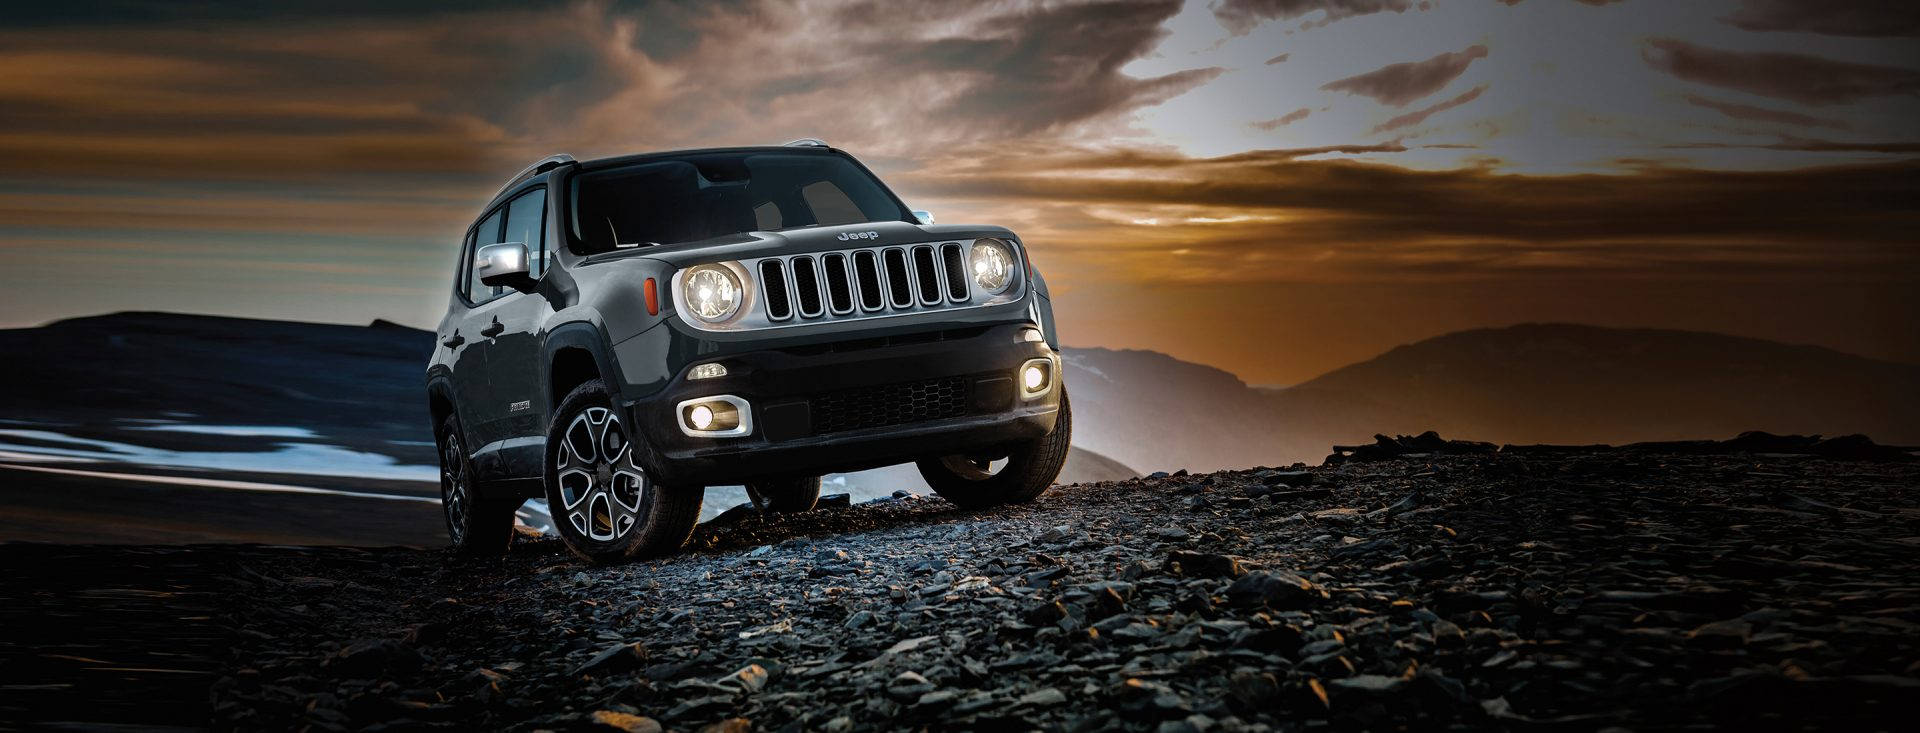 2017 Jeep Renegade Technology